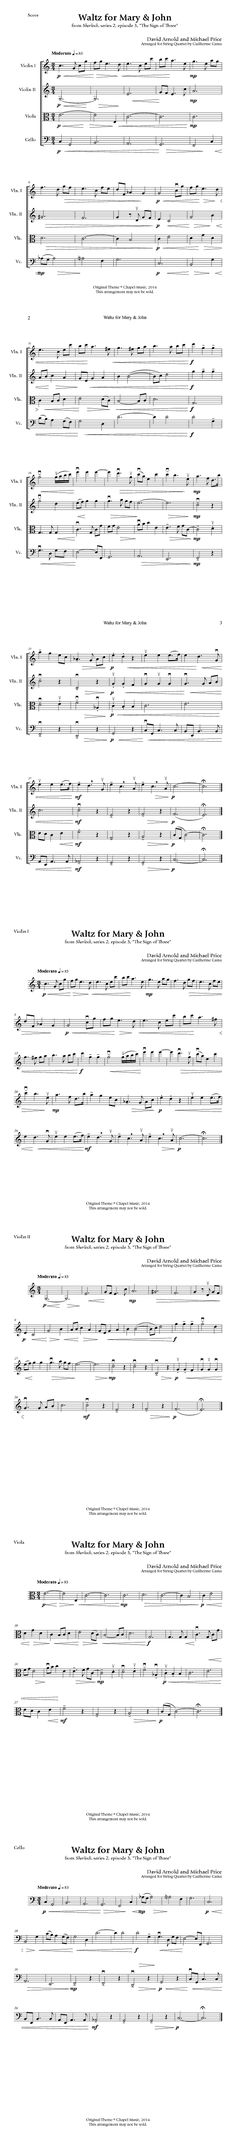 """""""Waltz for Mary John"""" from """"The Sign of Three"""" episode - for 2 violins, a viola, and a cello."""